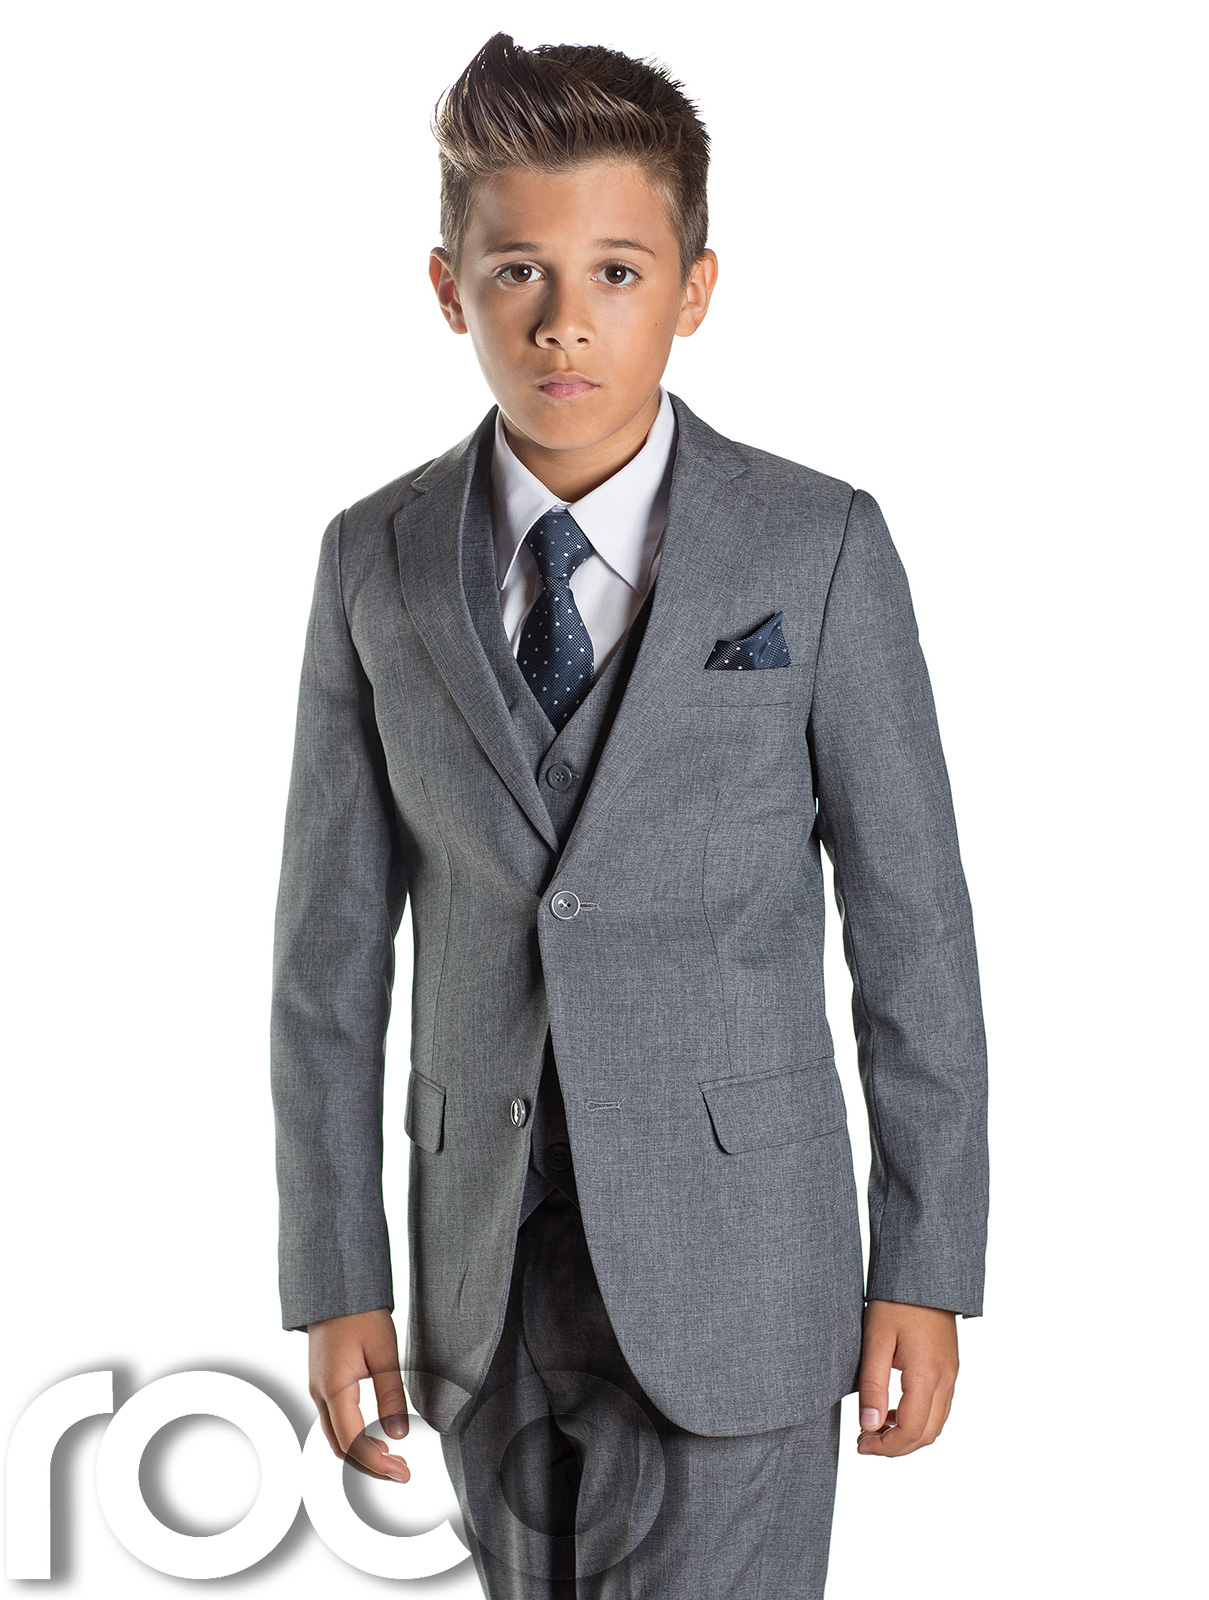 Boys Slim Fit Dark Grey Suit In Toddlers To Boys Sizing. from $ 72 out of 5 stars iGirldress. Boys Formal Dress Suit with Shirt and Vest. from $ 29 99 Prime. out of 5 stars Spring Notion. Boys' 4-Piece Dress up Pants Set. from $ 34 00 Prime. out of 5 stars Luca Gabriel.